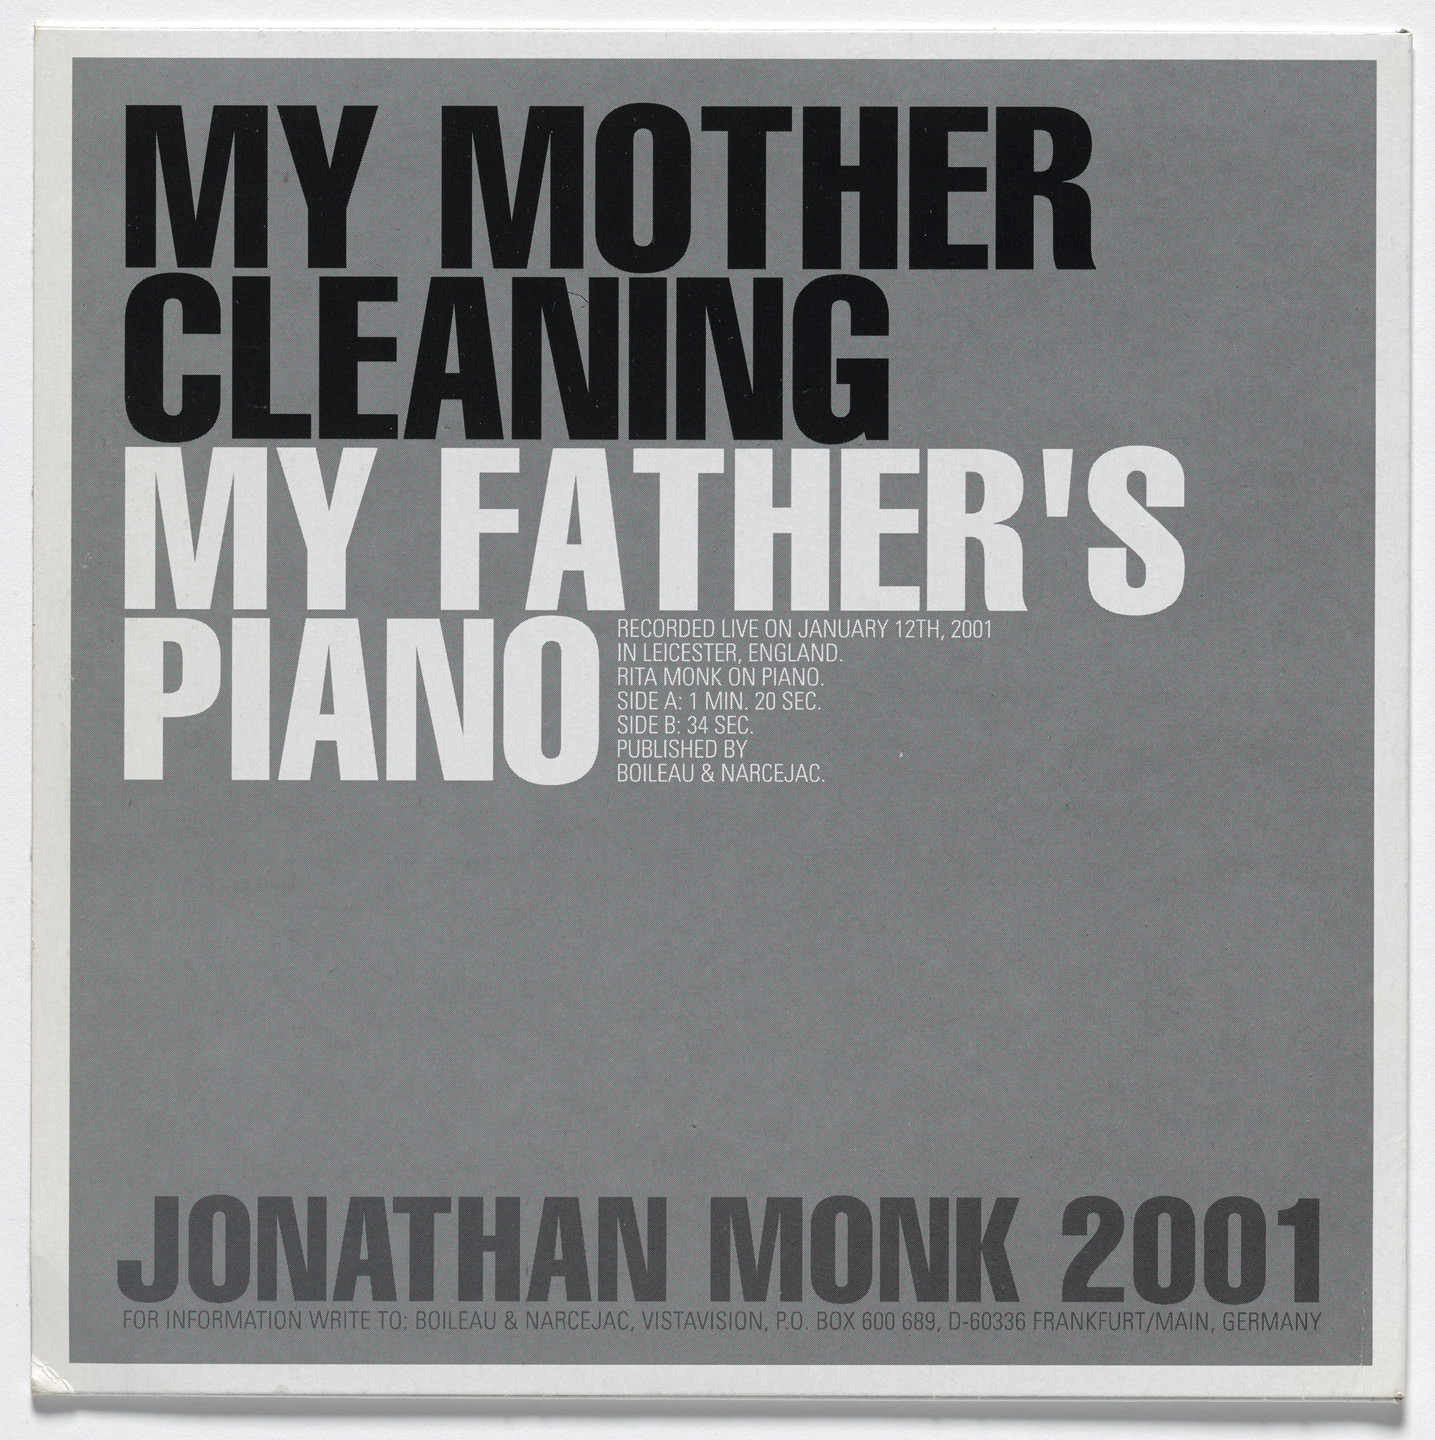 Jonathan Monk. My Mother Cleaning My Father's Piano. 2001